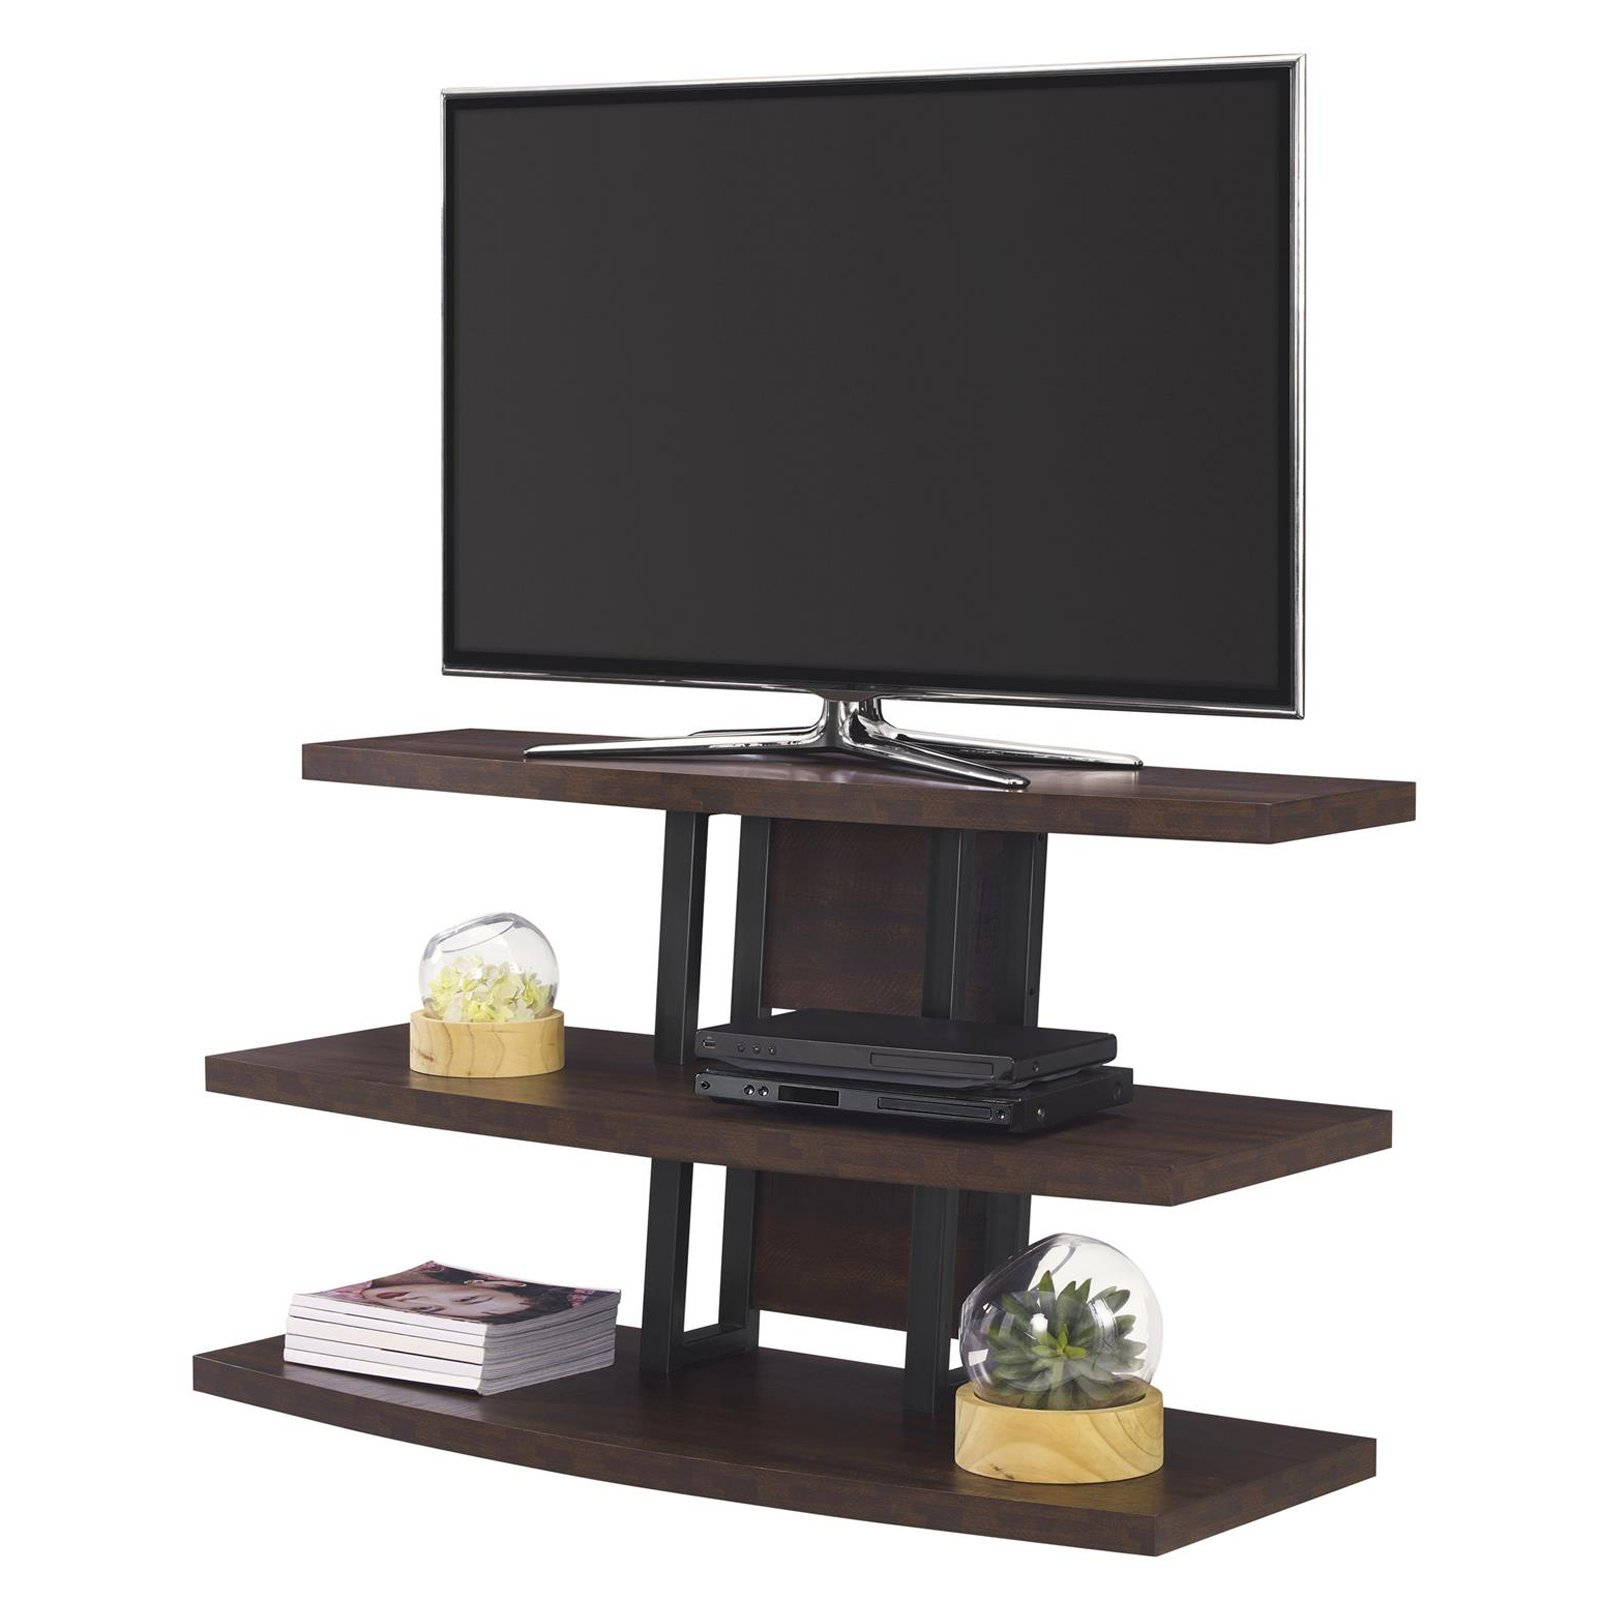 "Ameriwood Home Castling Tv Stand For Tvs Up To 55"", Espresso In Favorite Forma 65 Inch Tv Stands (View 13 of 20)"